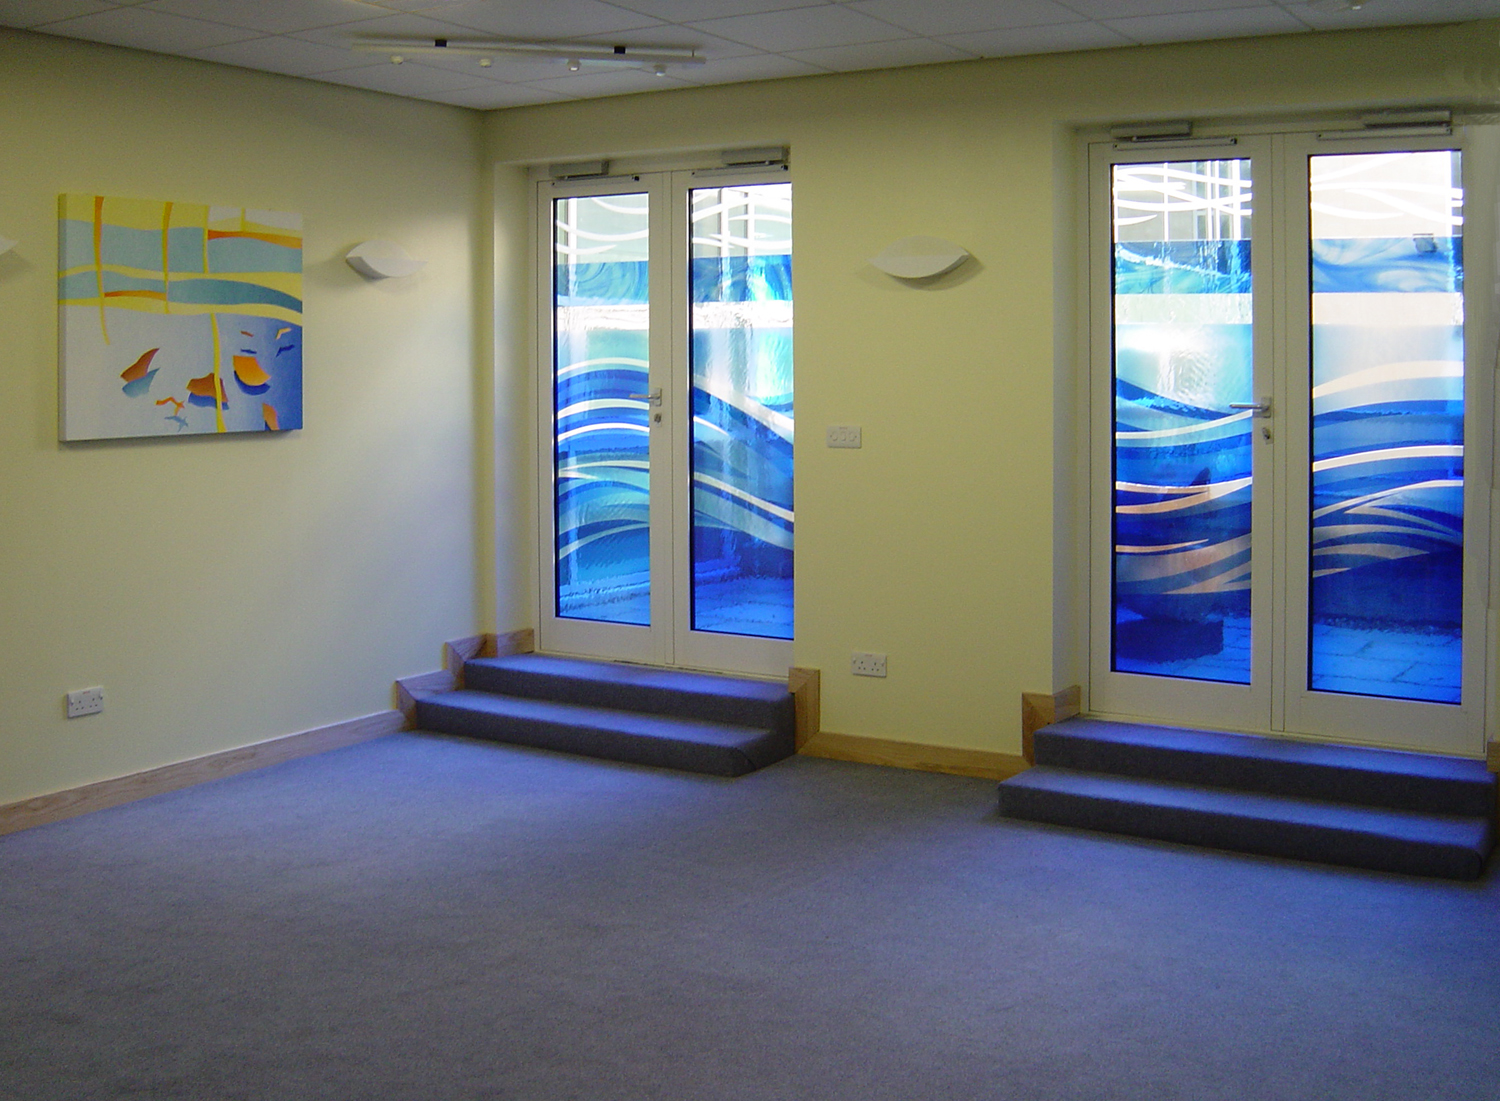 Doors and paintings for The Sanctuary at Royal Berkshire Hopsital, Reading.